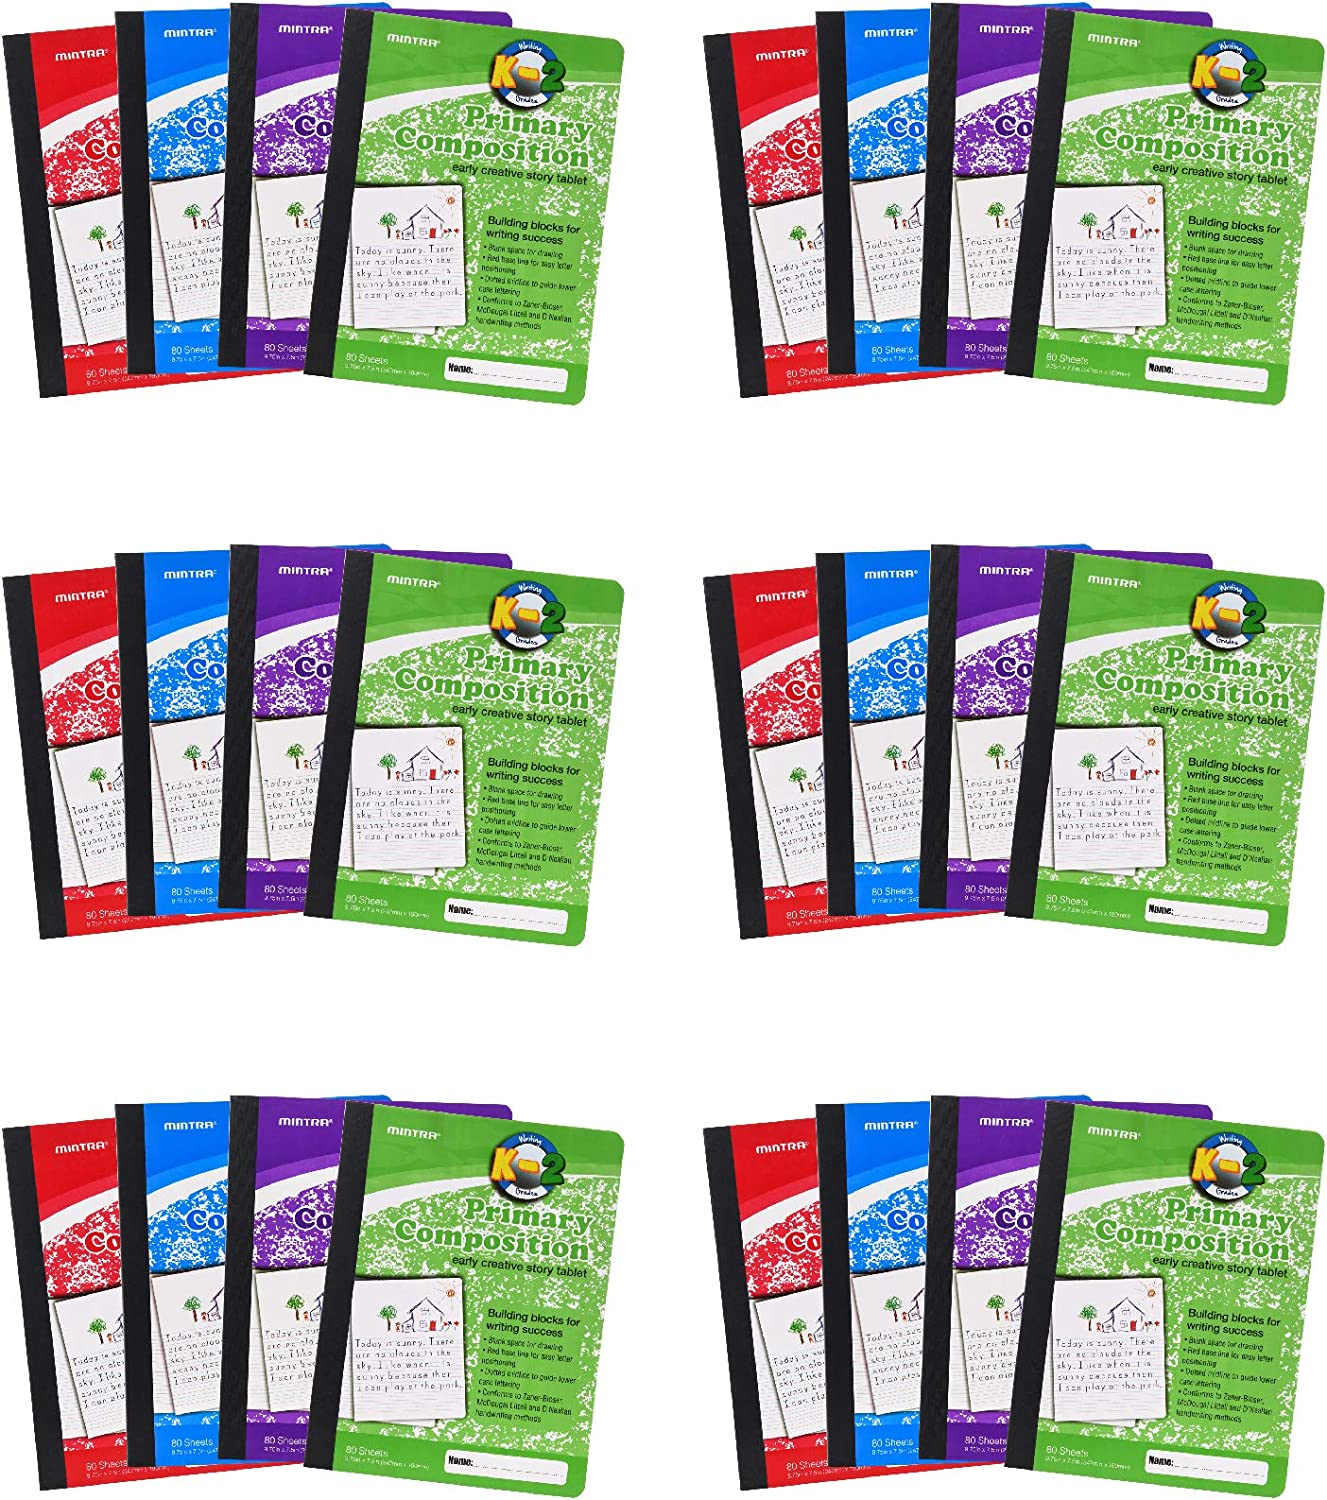 Mintra Office Composition Notebooks - for School, Home, Business, Office (Primary Ruled - Assorted, 24 units (6-4pks))